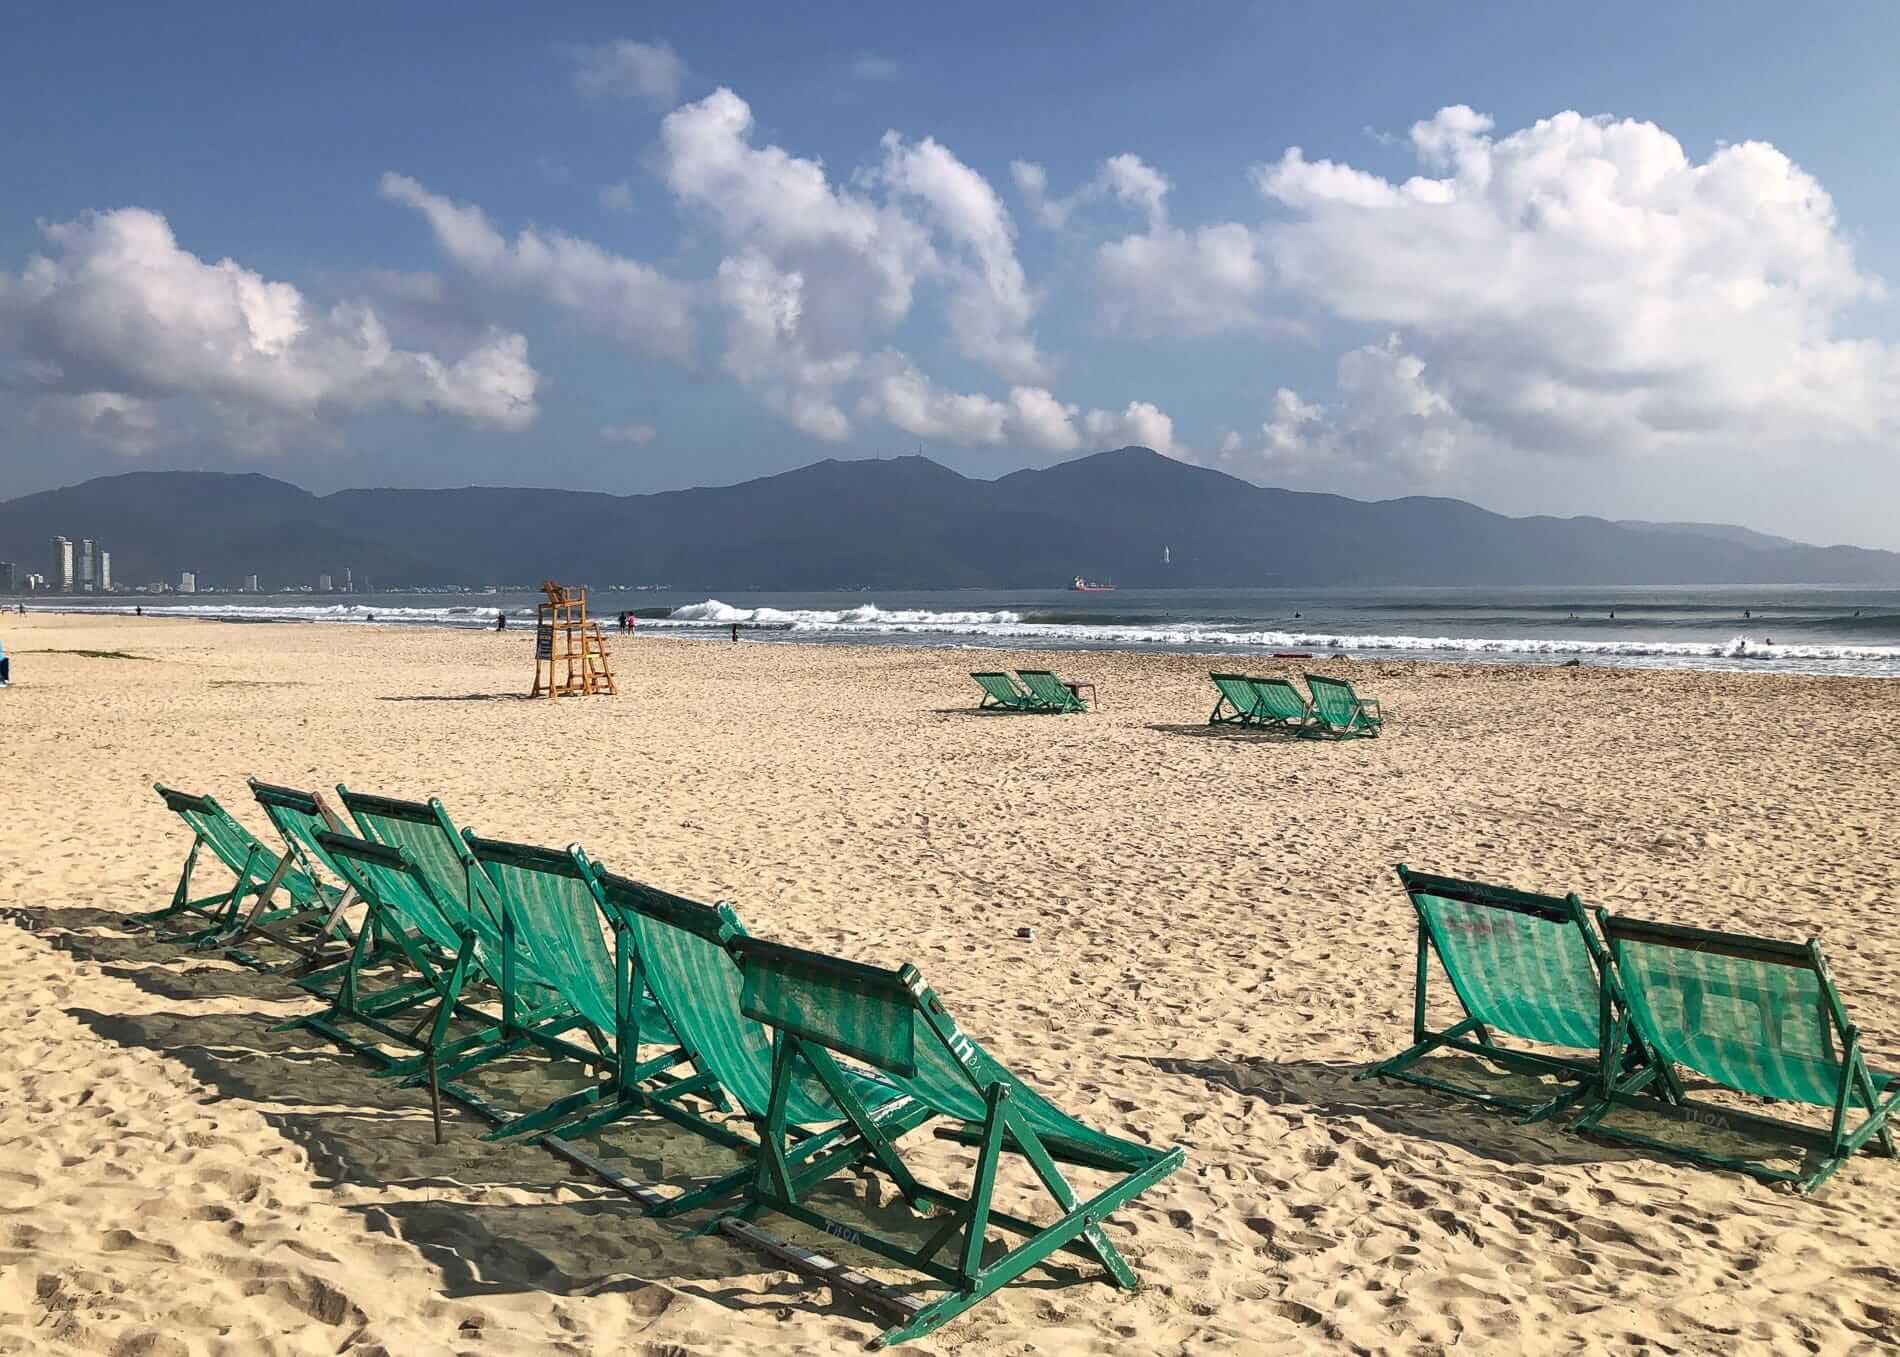 green beach chairs lined at My Khe Beach